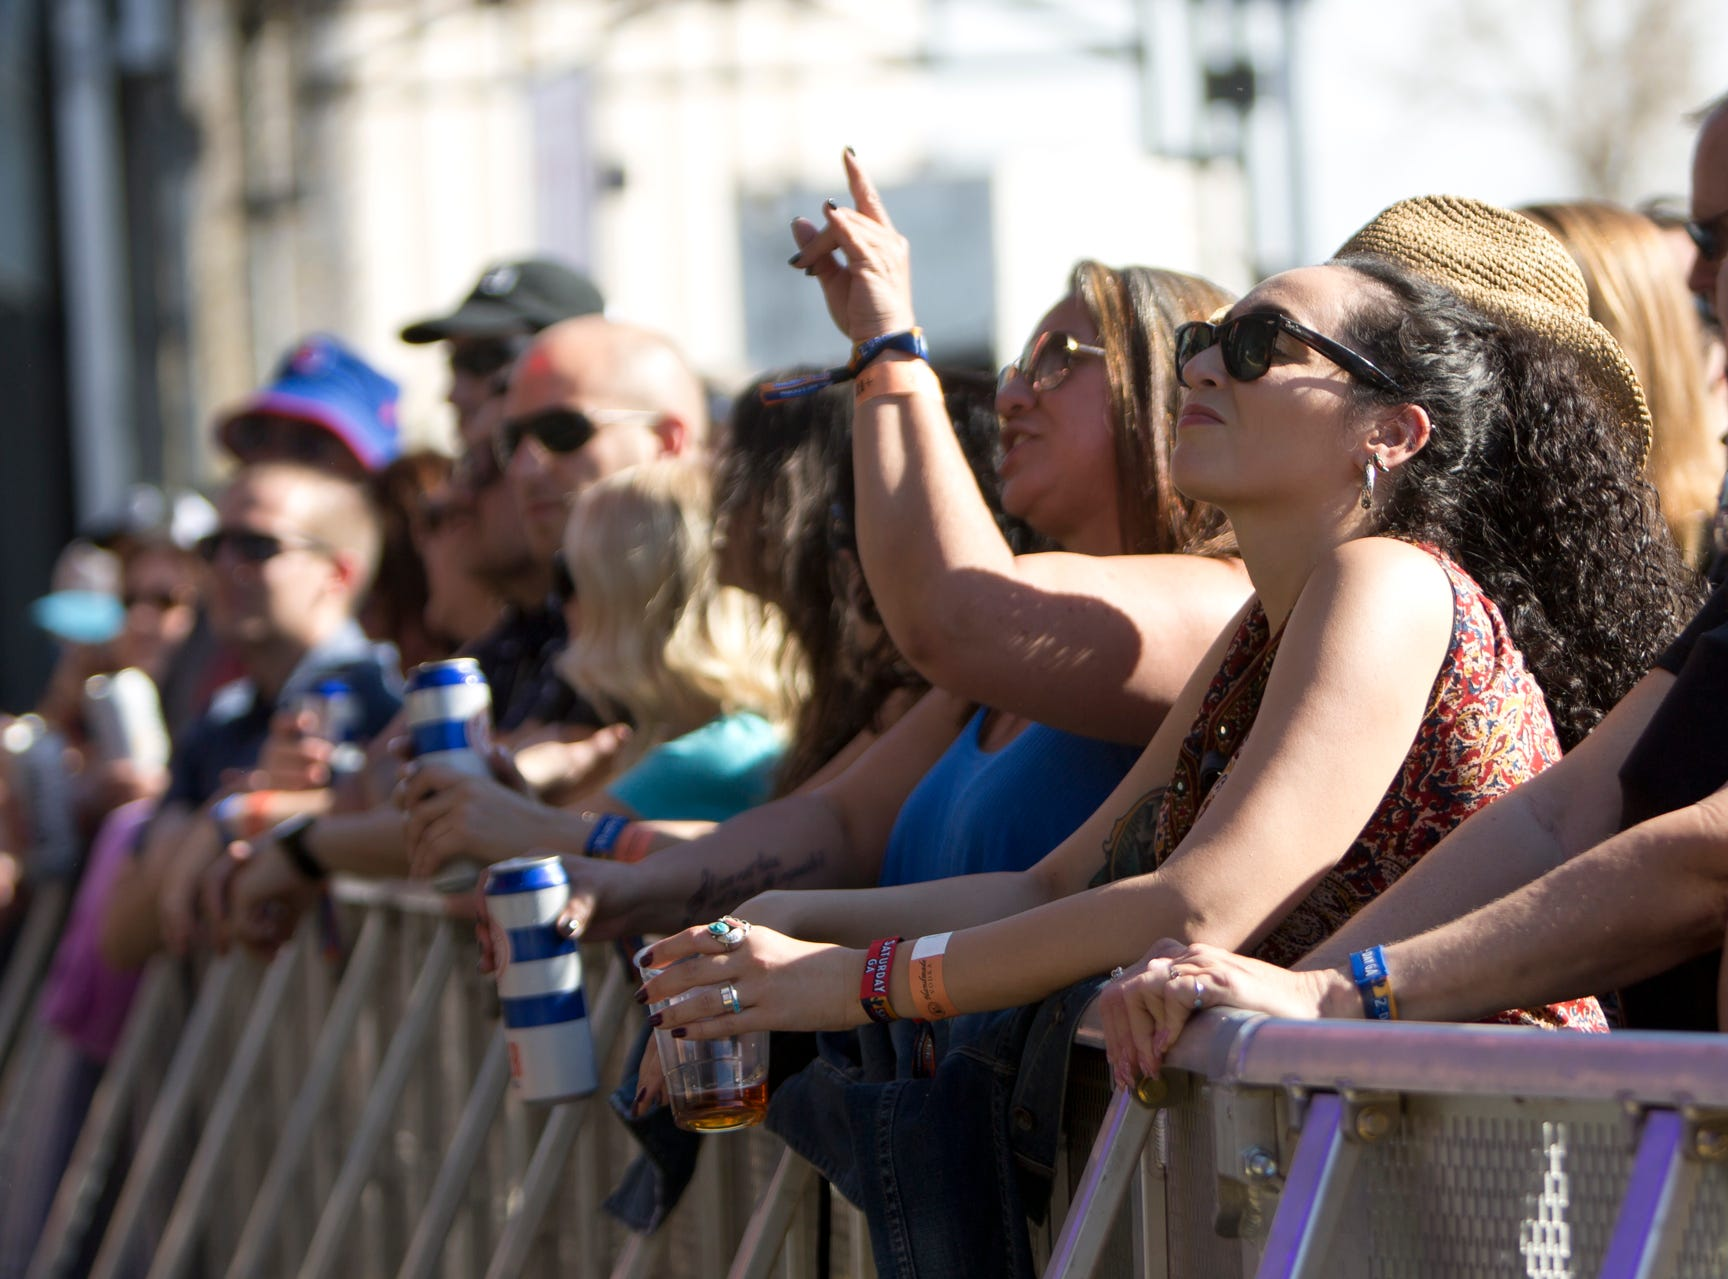 Fans sing along as Roger Clyne and The Peacemakers perform during the Innings Festival on March 2, 2019, at Tempe Beach Park in Tempe.